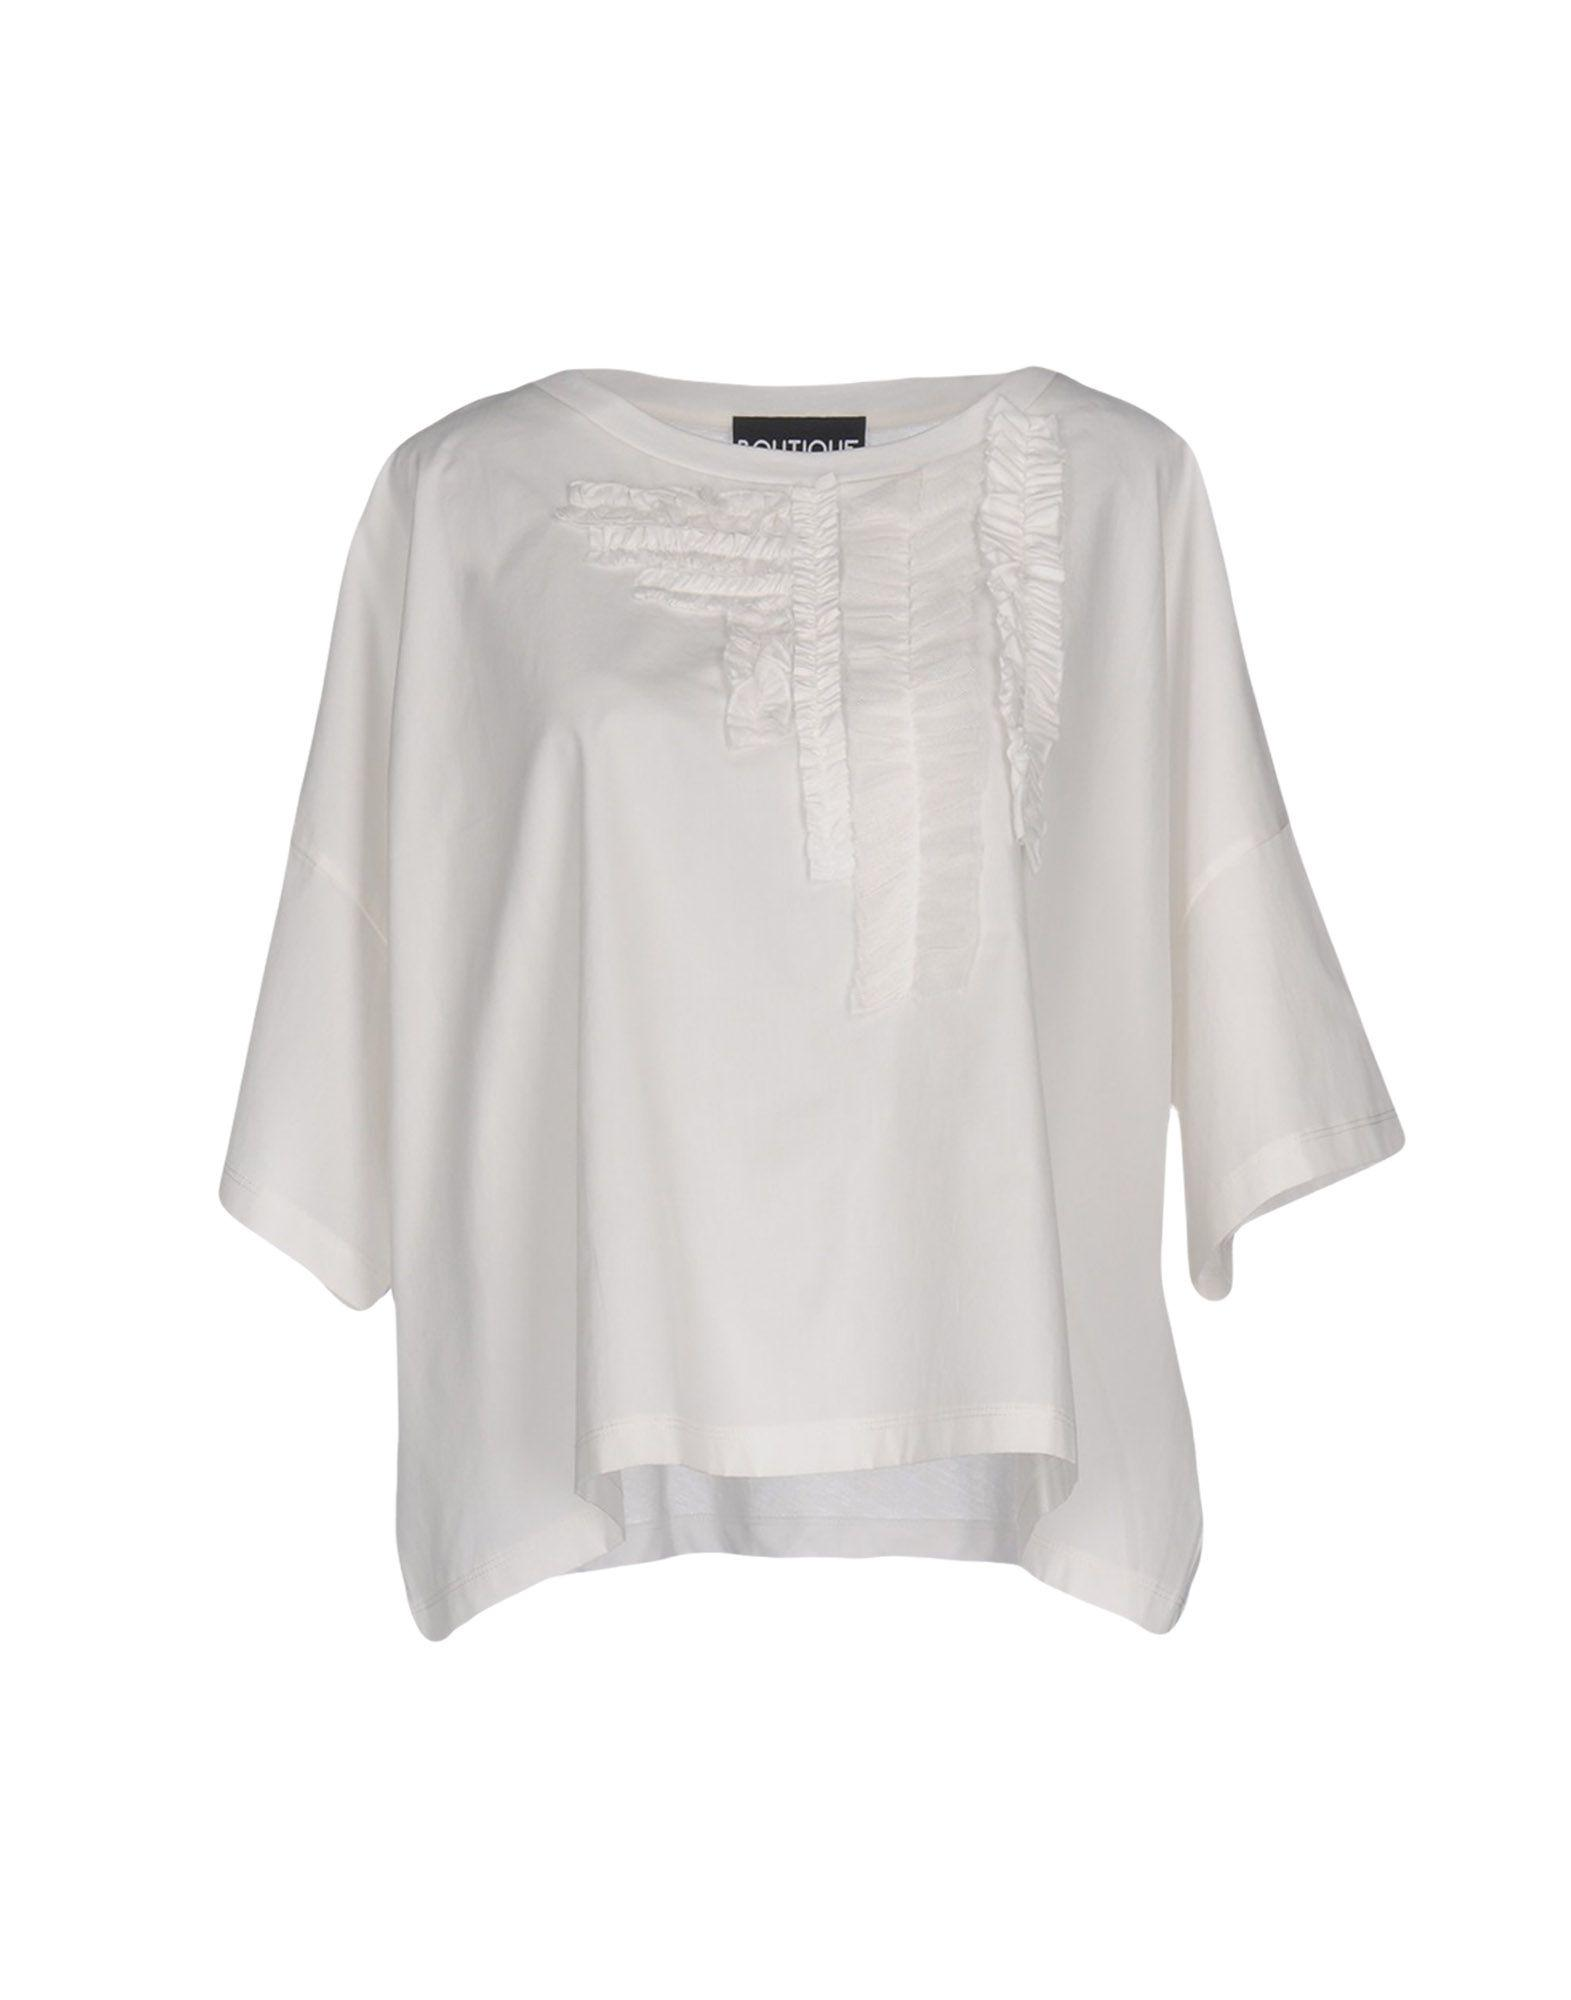 5a0f91c55c9b7 Boutique Moschino Blouse in White - Lyst